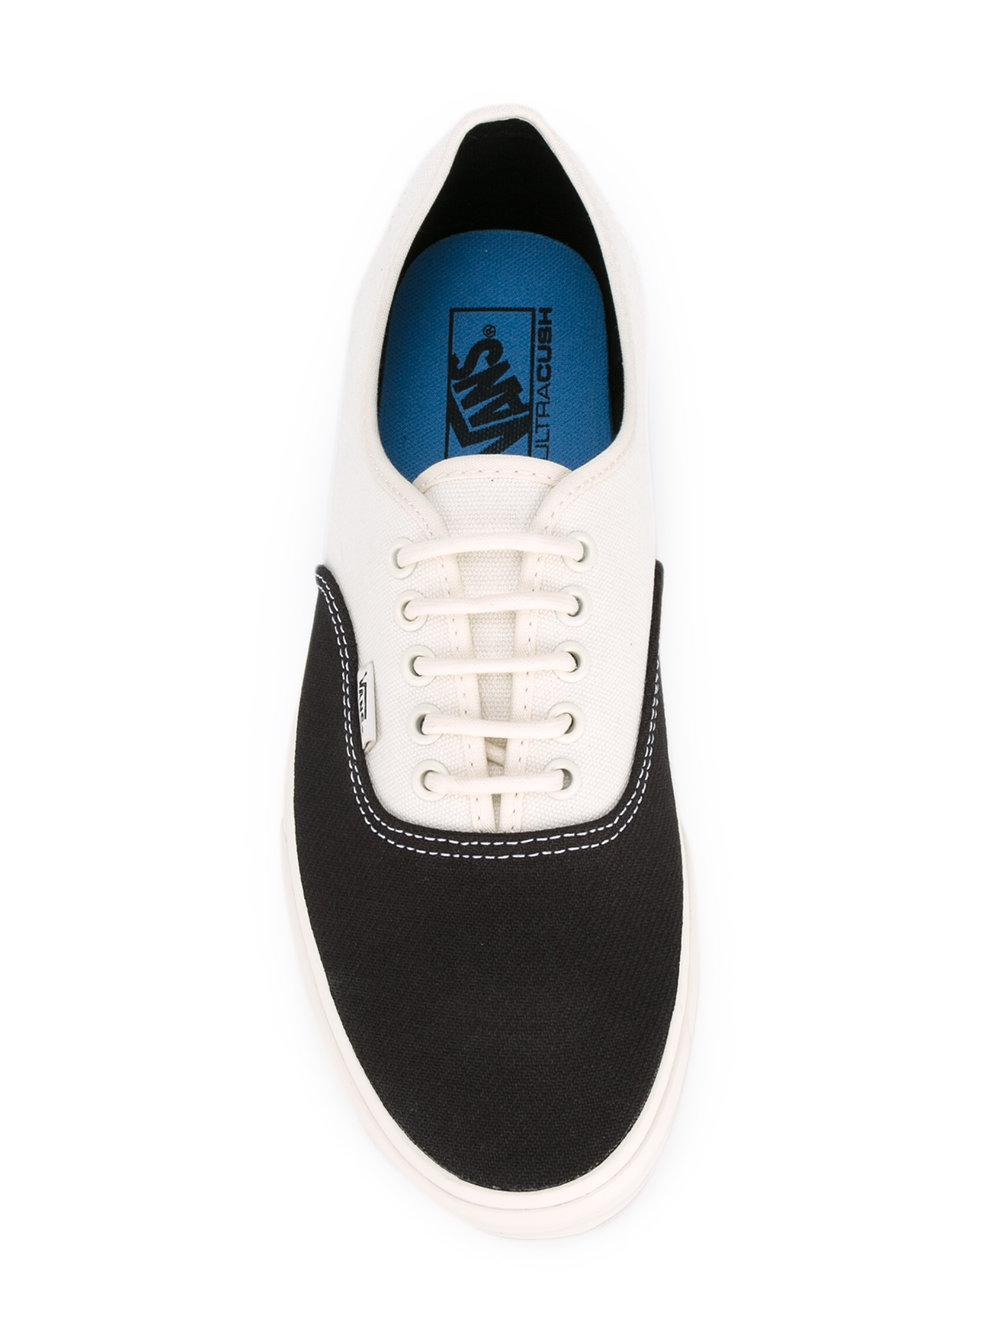 Vans Panelled Canvas Sneakers in White